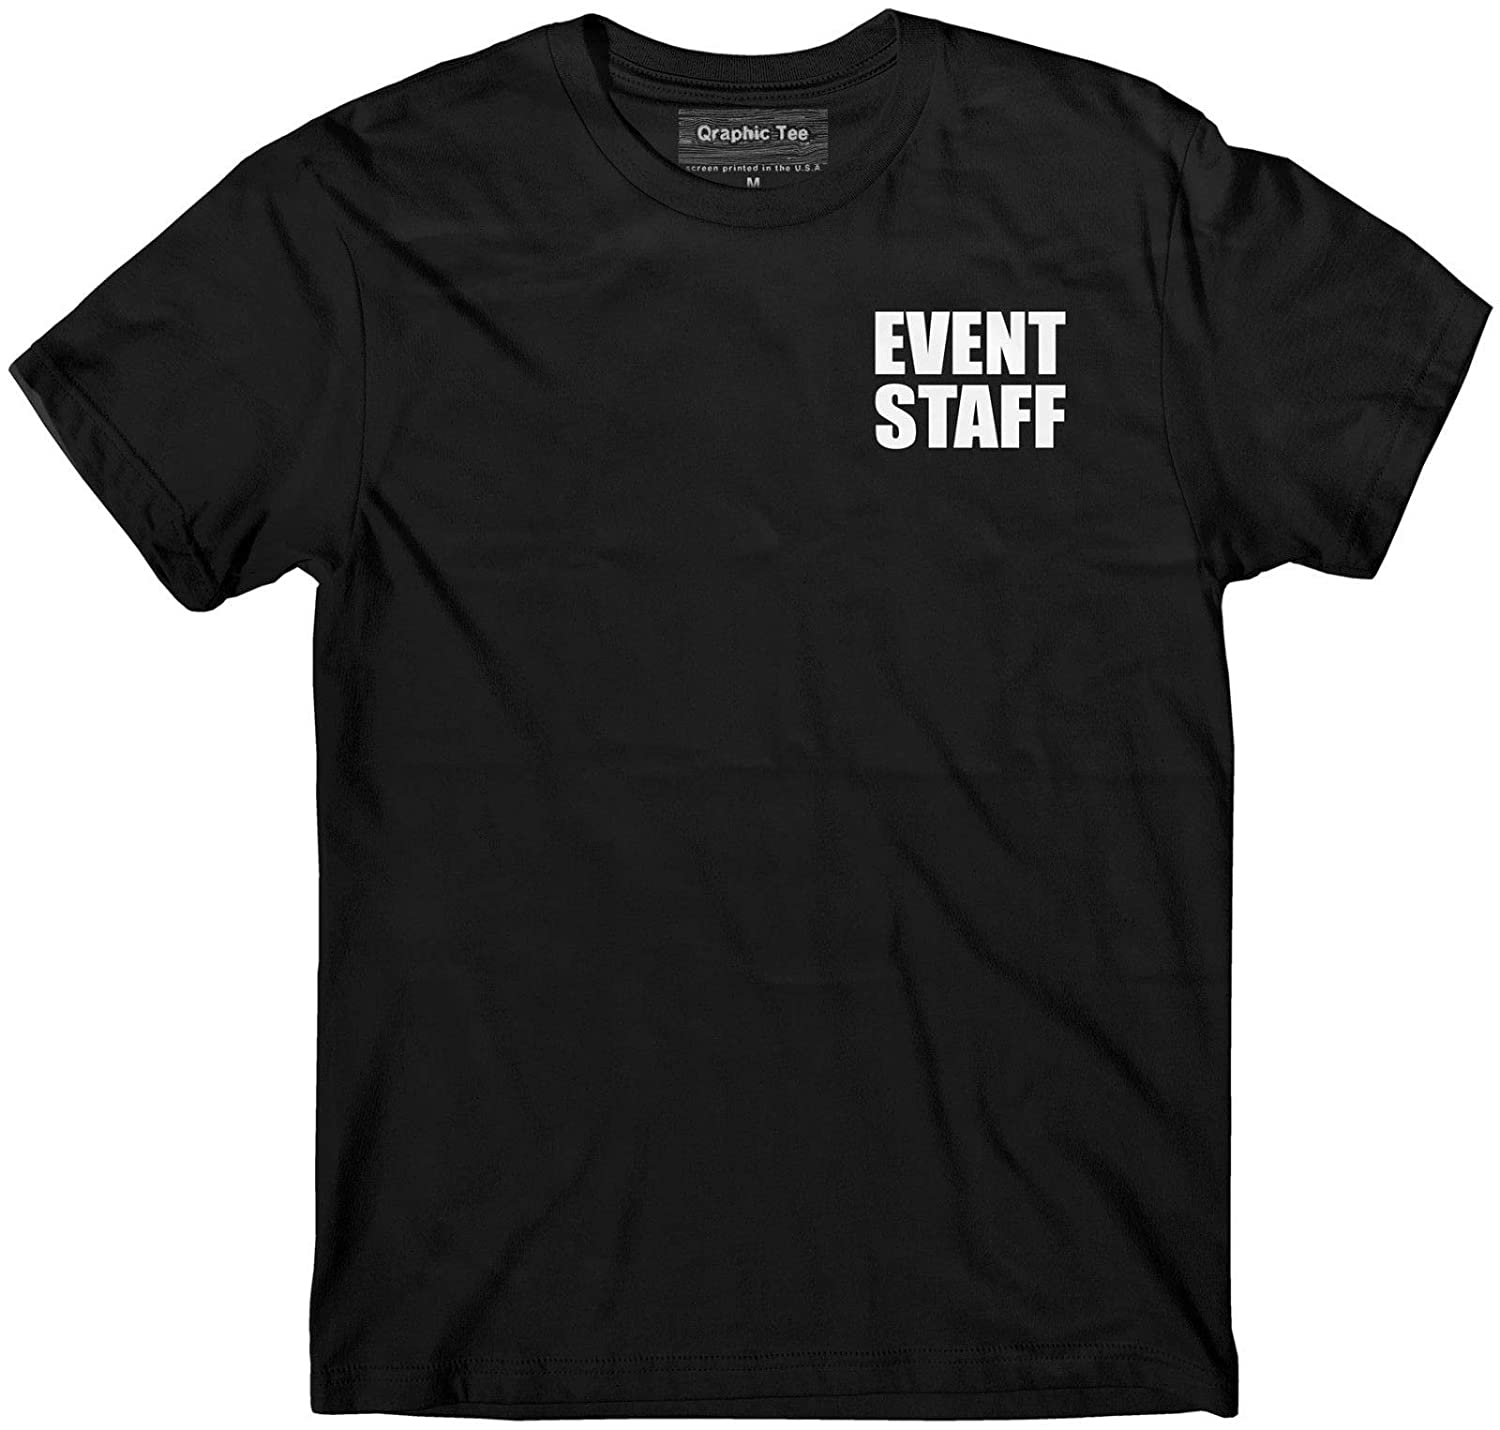 Smart People Clothing Event Staff t-Shirt Event Staff Uniform Staff t-Shirt Black Event Staff Shirt